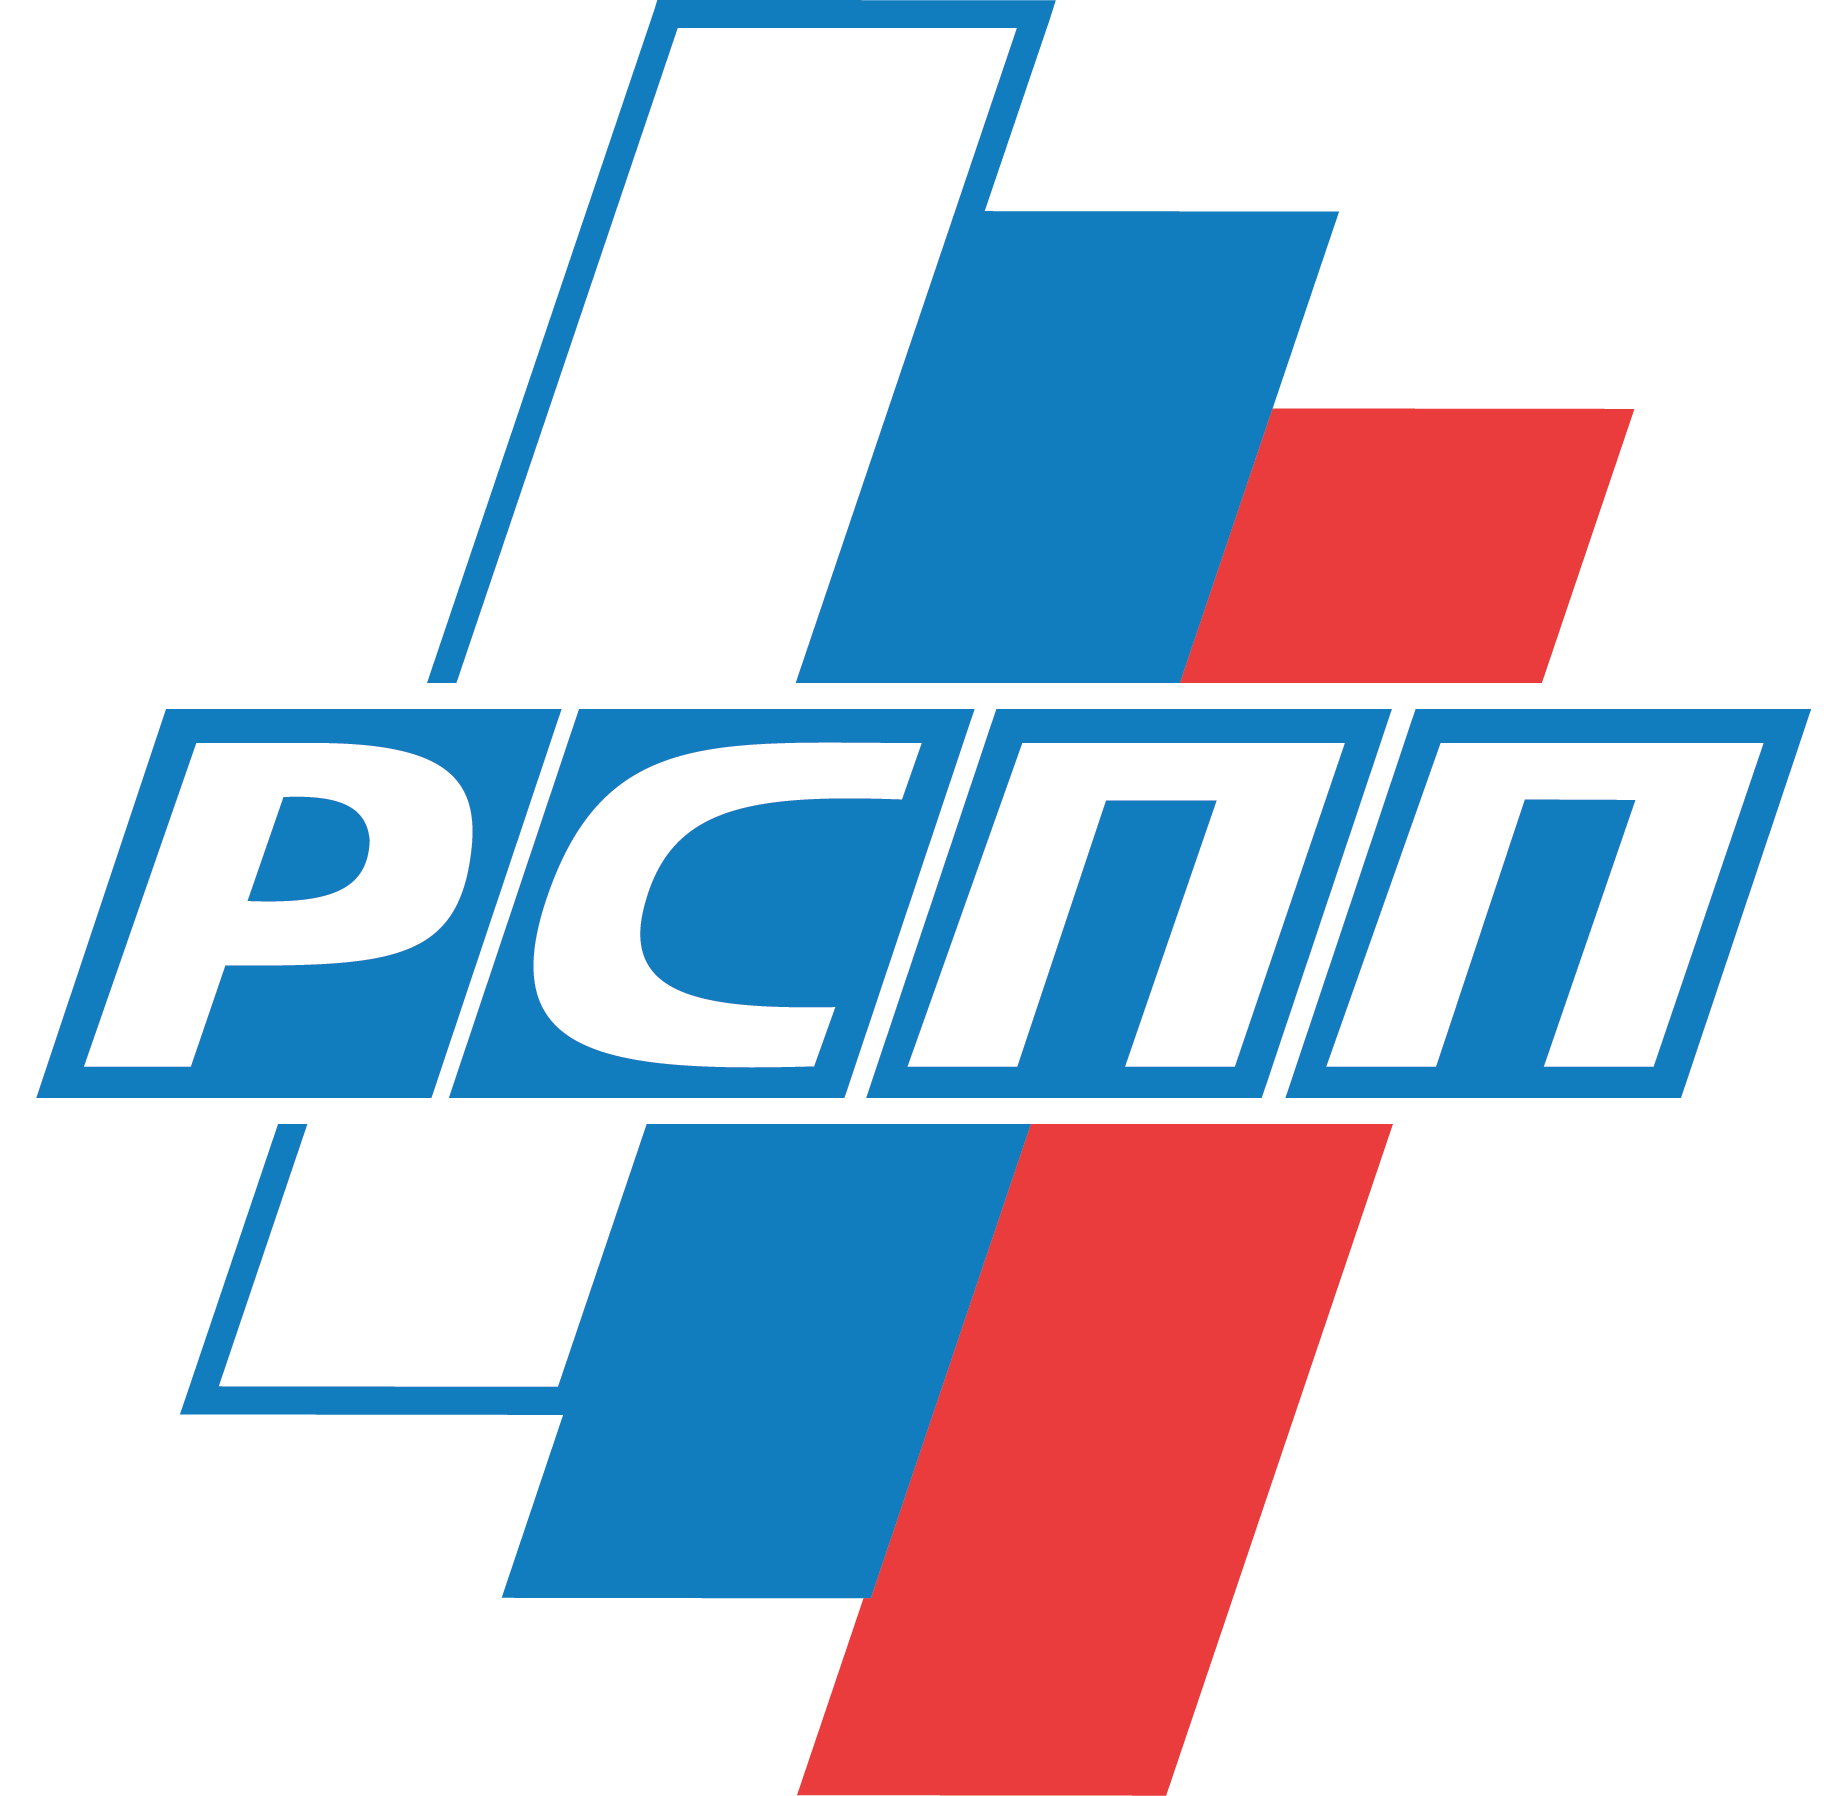 http://рспп.рф